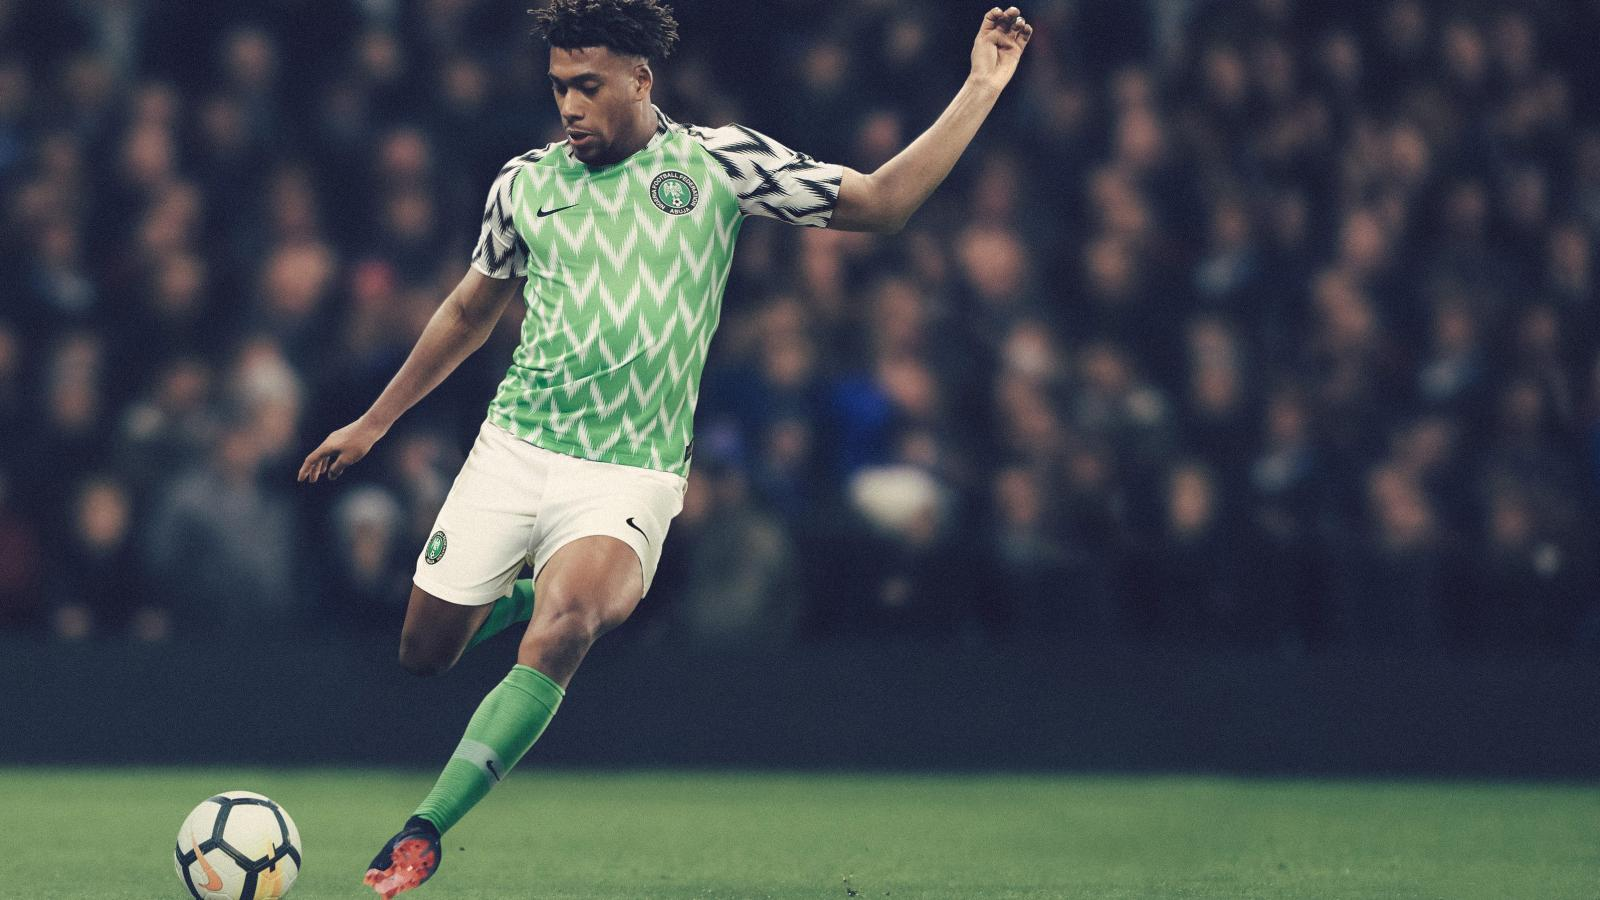 f6609f6785e Nigeria Super Eagles World Cup kit by Nike is a hit — Quartz Africa